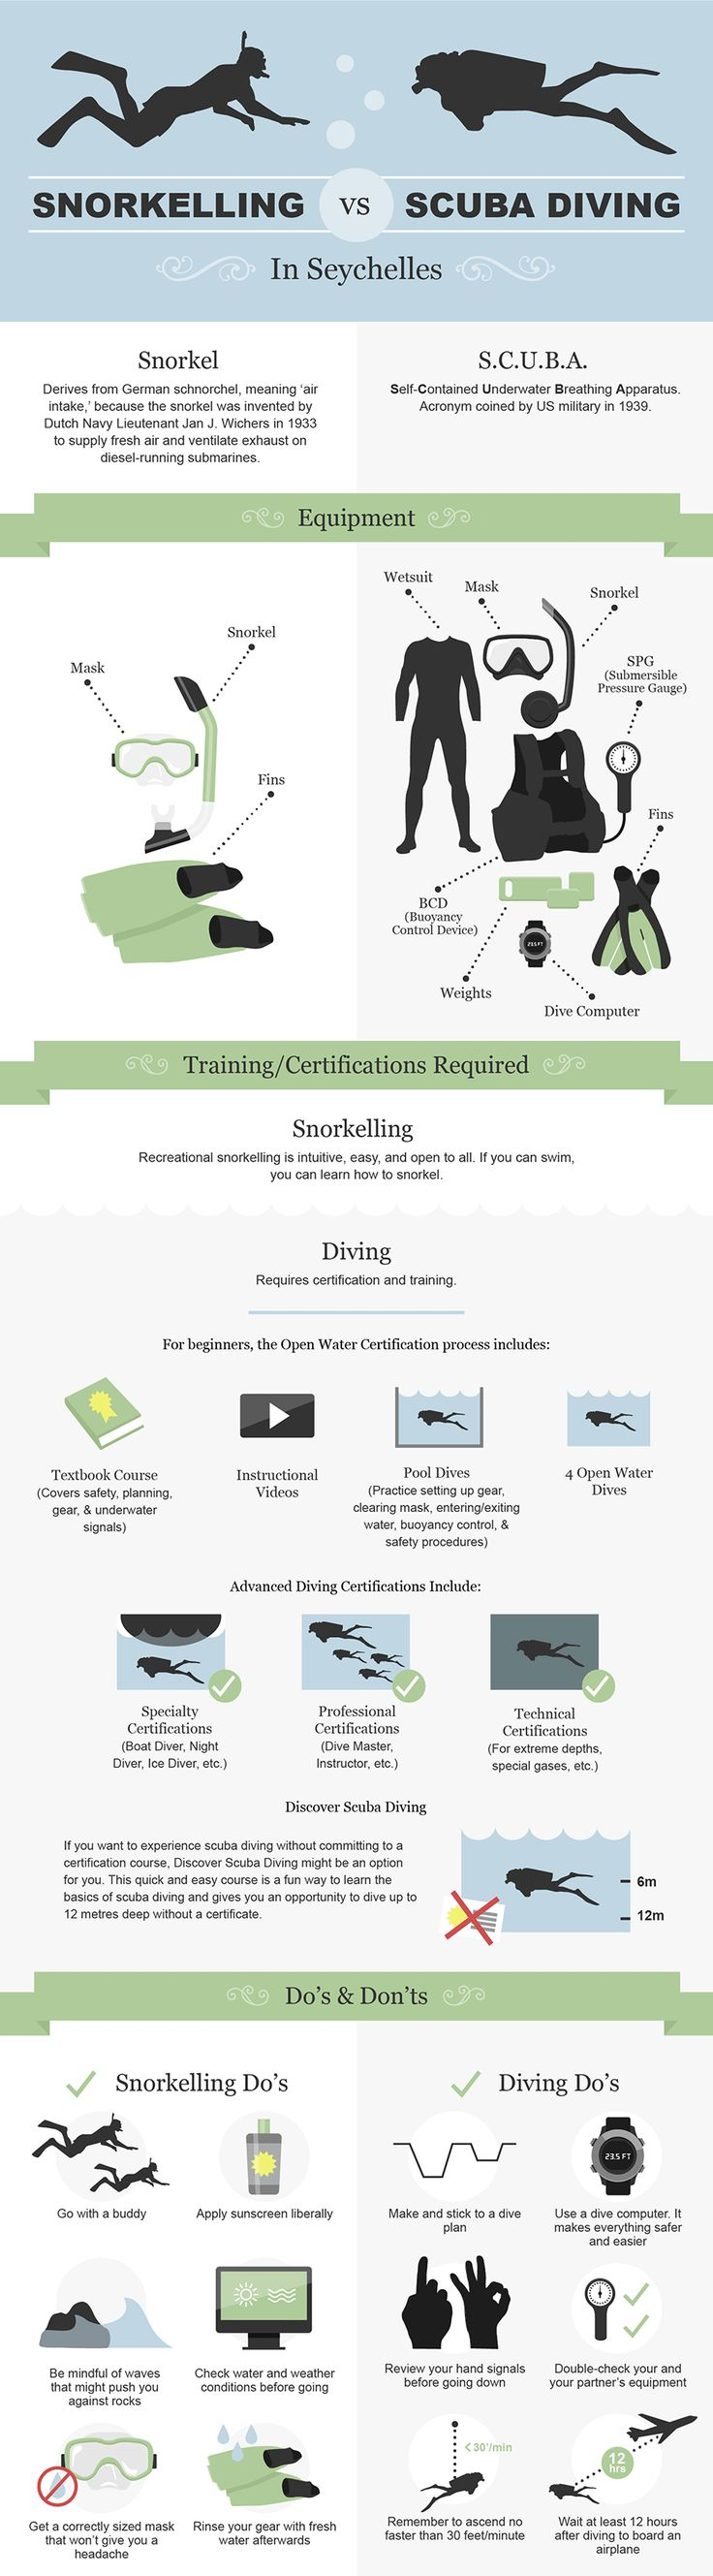 Snorkelling vs Scuba Diving in Seychelles  [by Raffles Hotels & Resorts -- via #tipsographic]. More at tipsographic.com